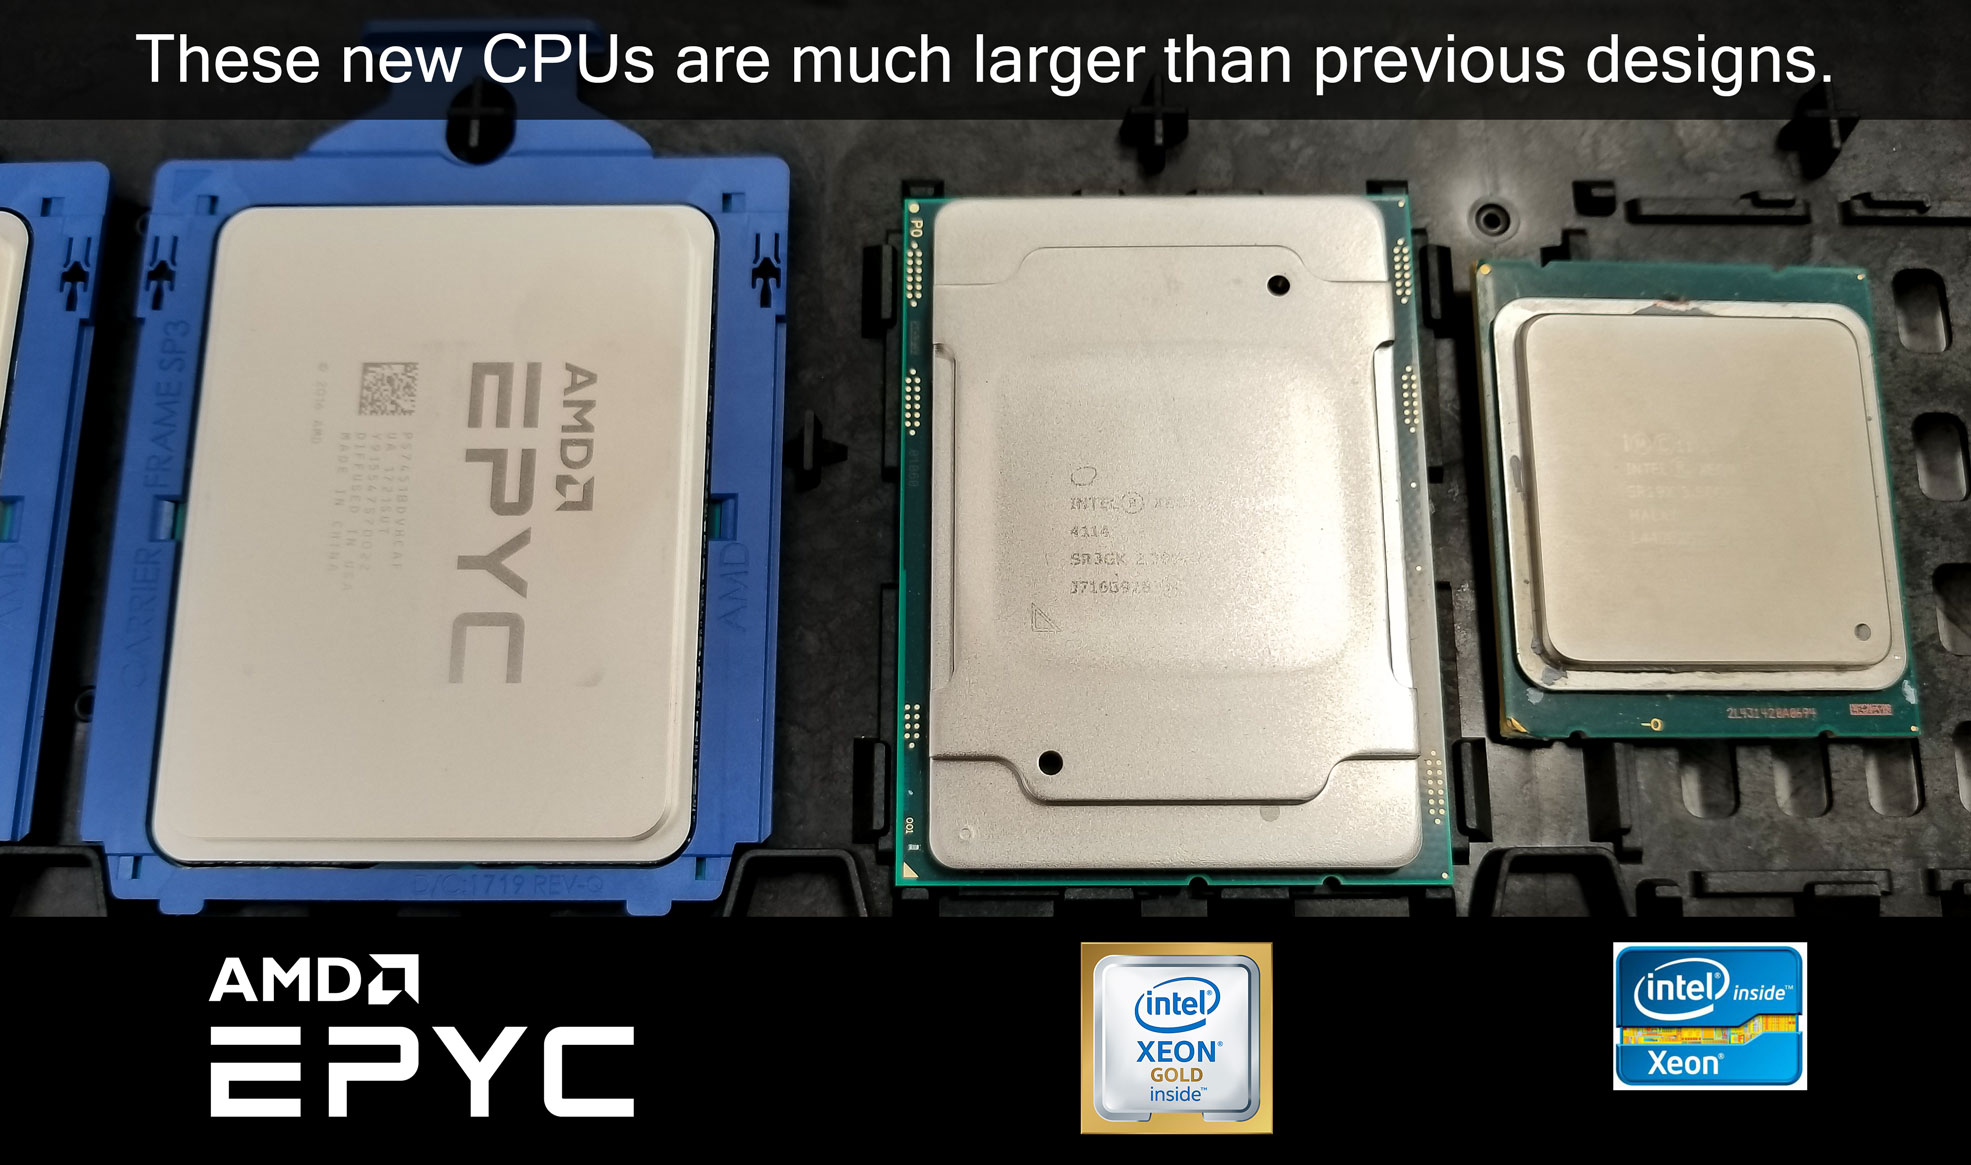 New CPUs are rather large